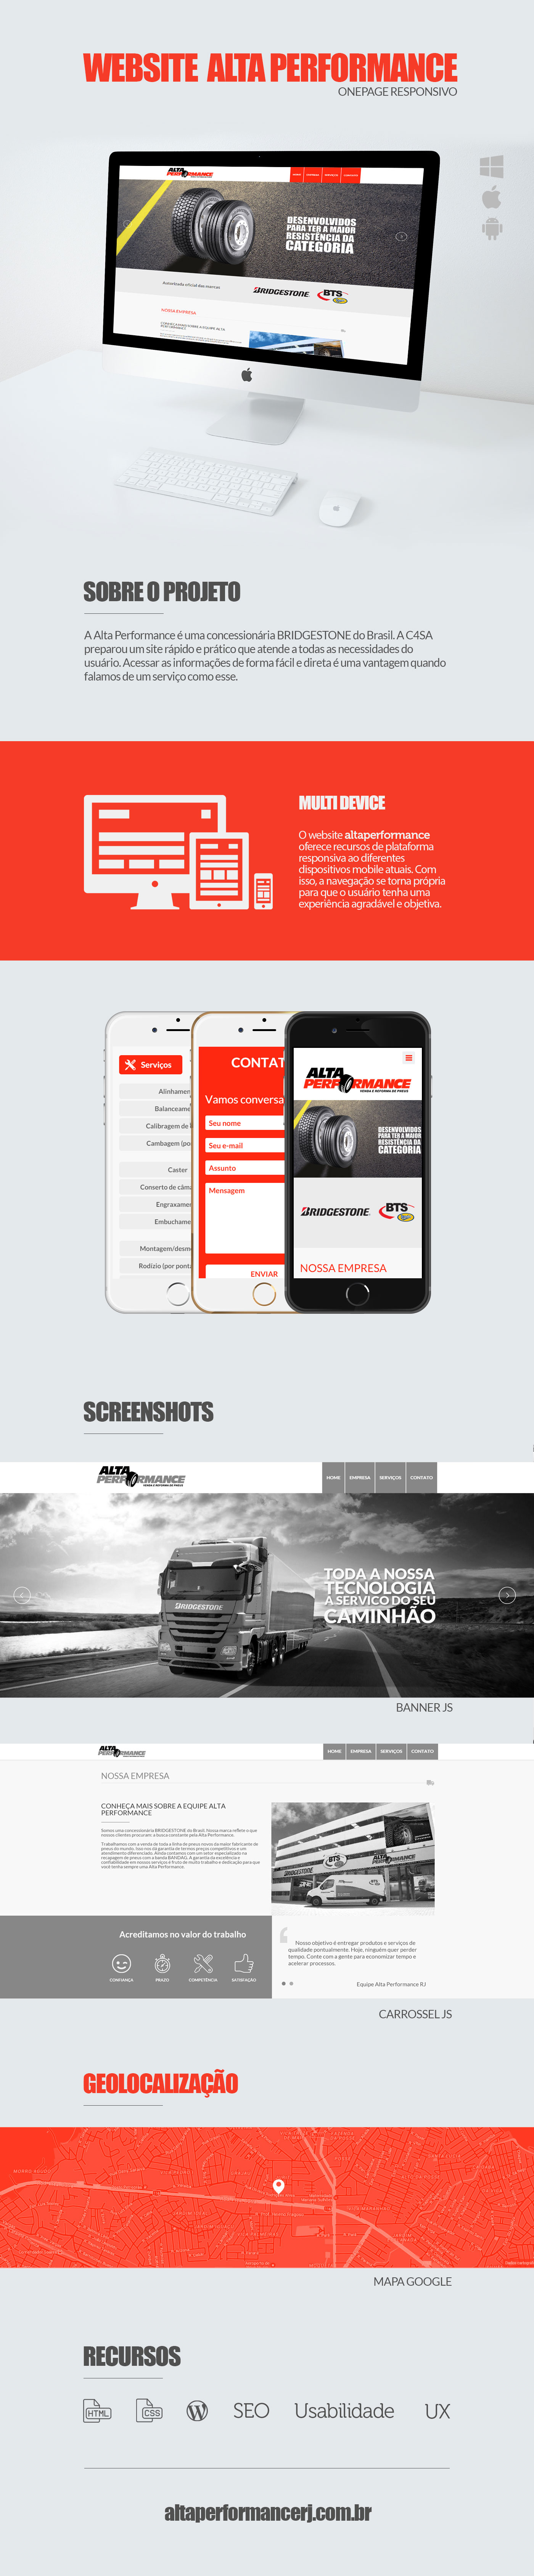 Desktop, Frontend, Mobile, Multi Device, Responsivo, SEO, Site, UI, UX, Webdesign, Website, WordPress